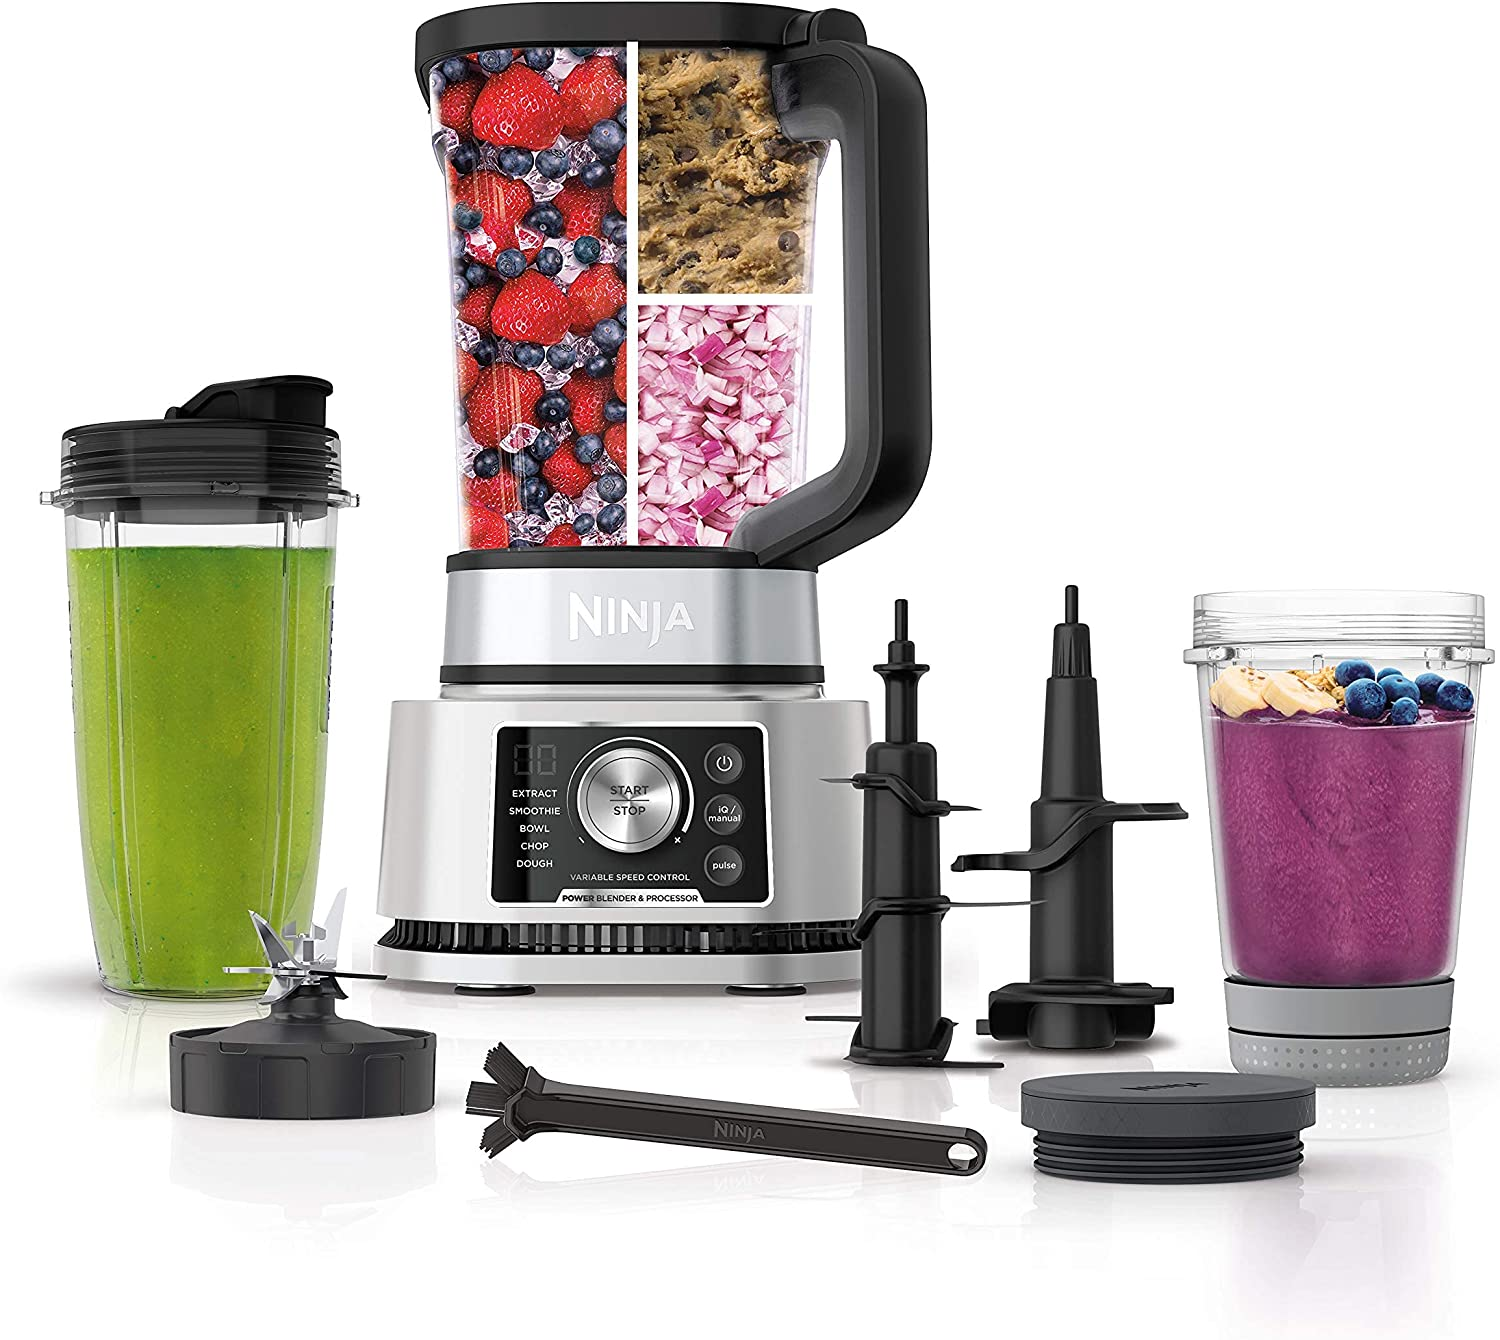 Ninja SS351 Foodi Max 68% OFF Power Pitcher Smoothie Maker 4in Fees free!! System Bowl